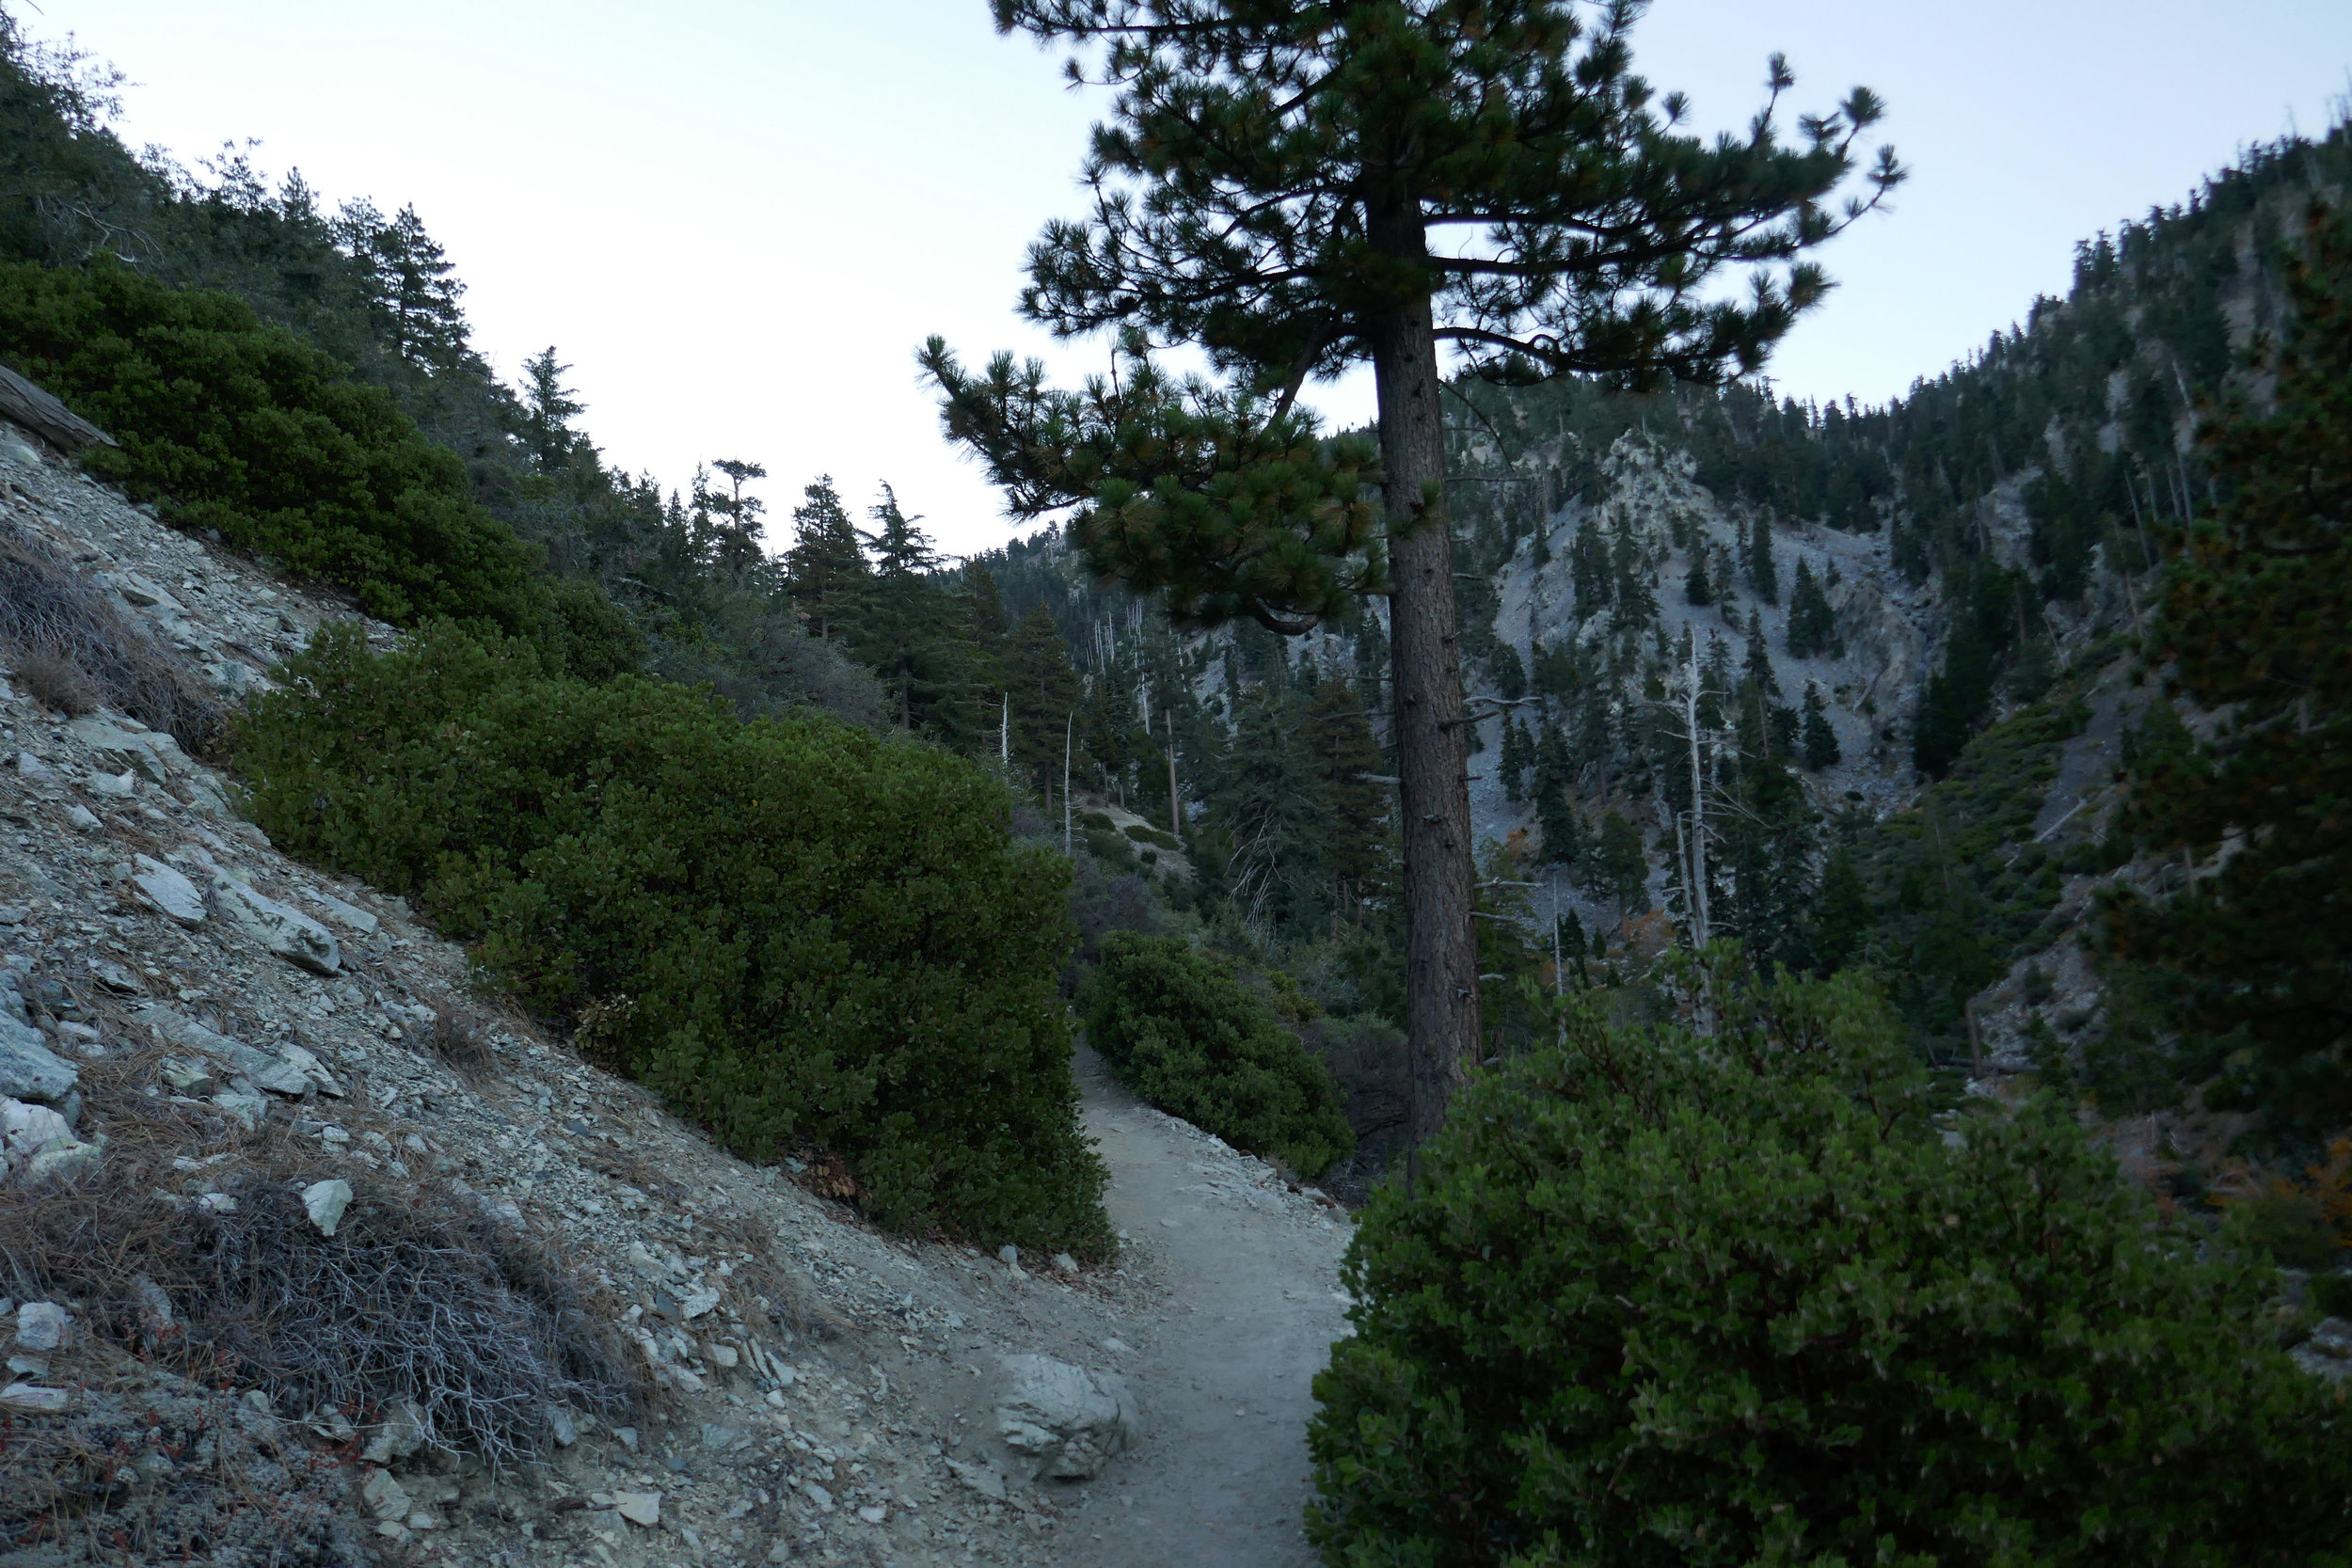 After the rocky trek through the canyon we arrived at the switchbacks.